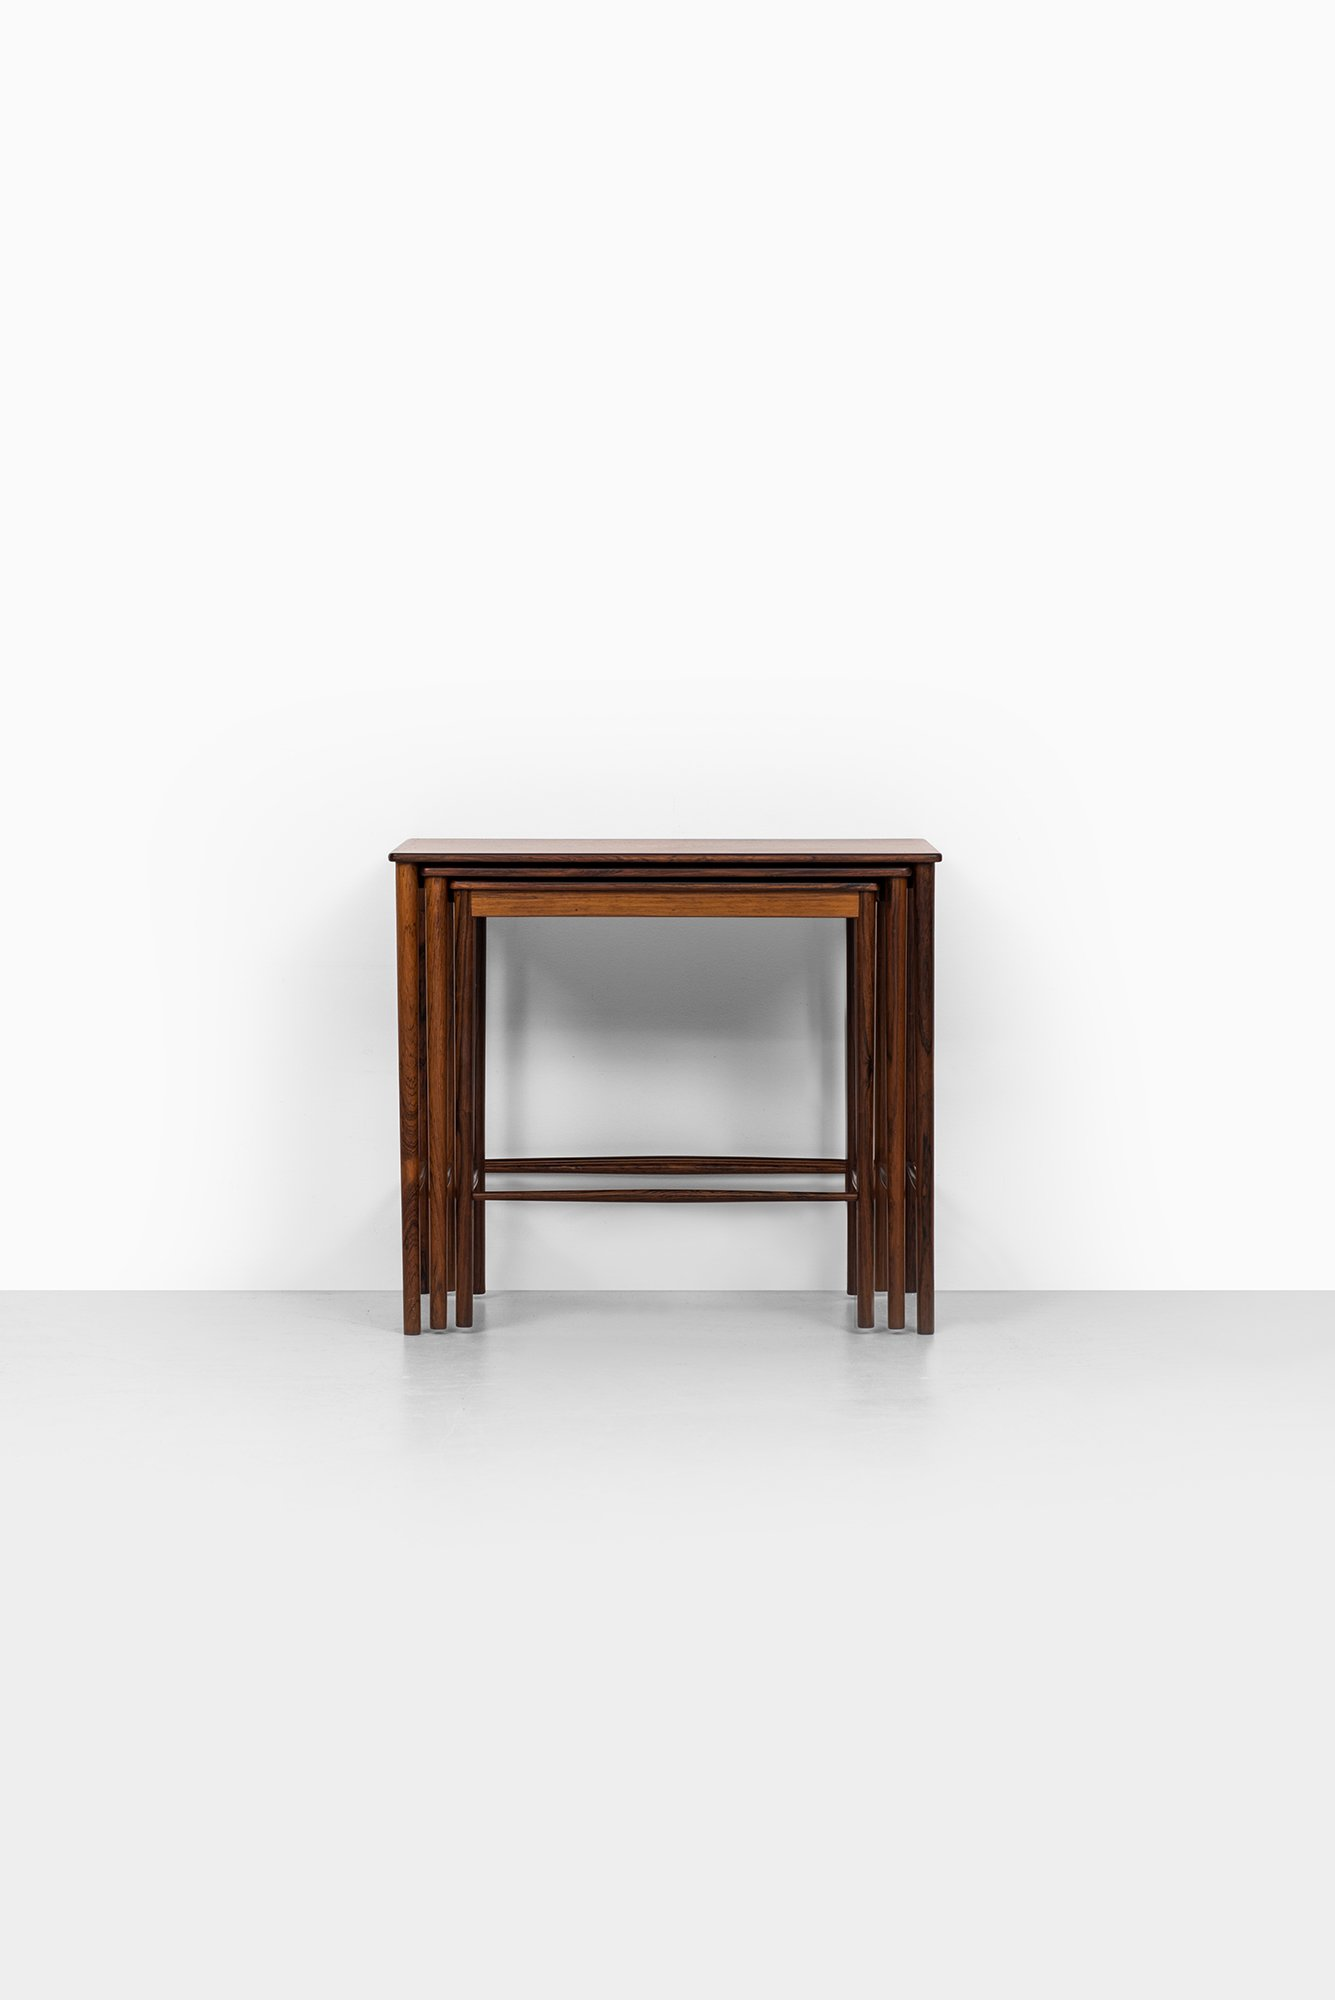 Grete Jalk Nesting Tables In Rosewood At Studio Schalling